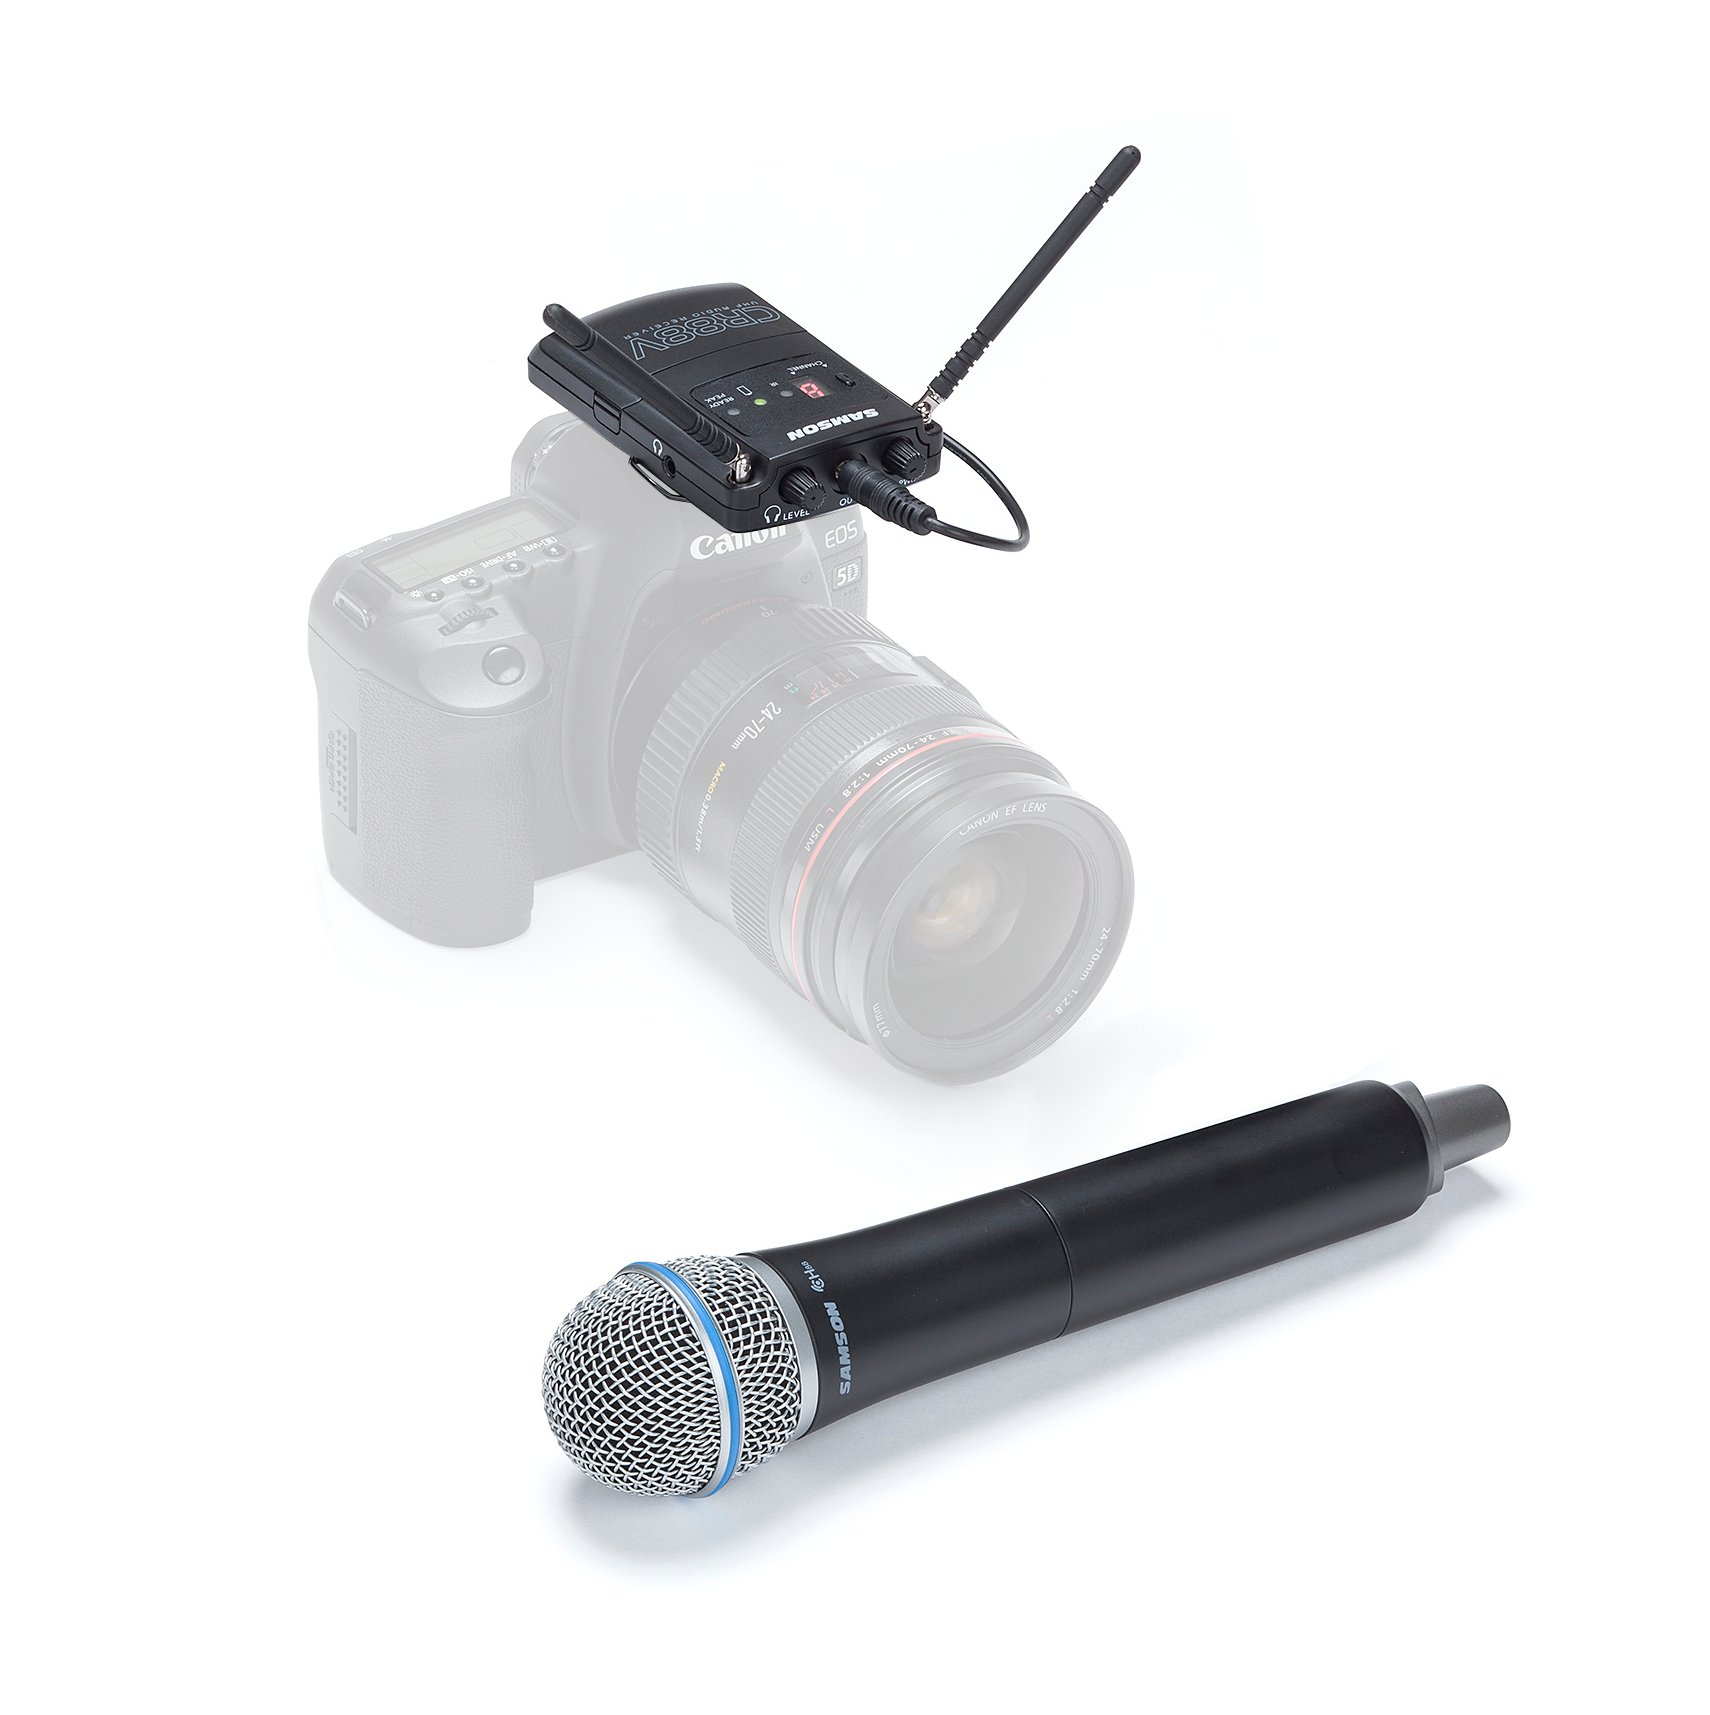 K Band Wireless Microphone System with Q8 Handheld Microphone/Transmitter